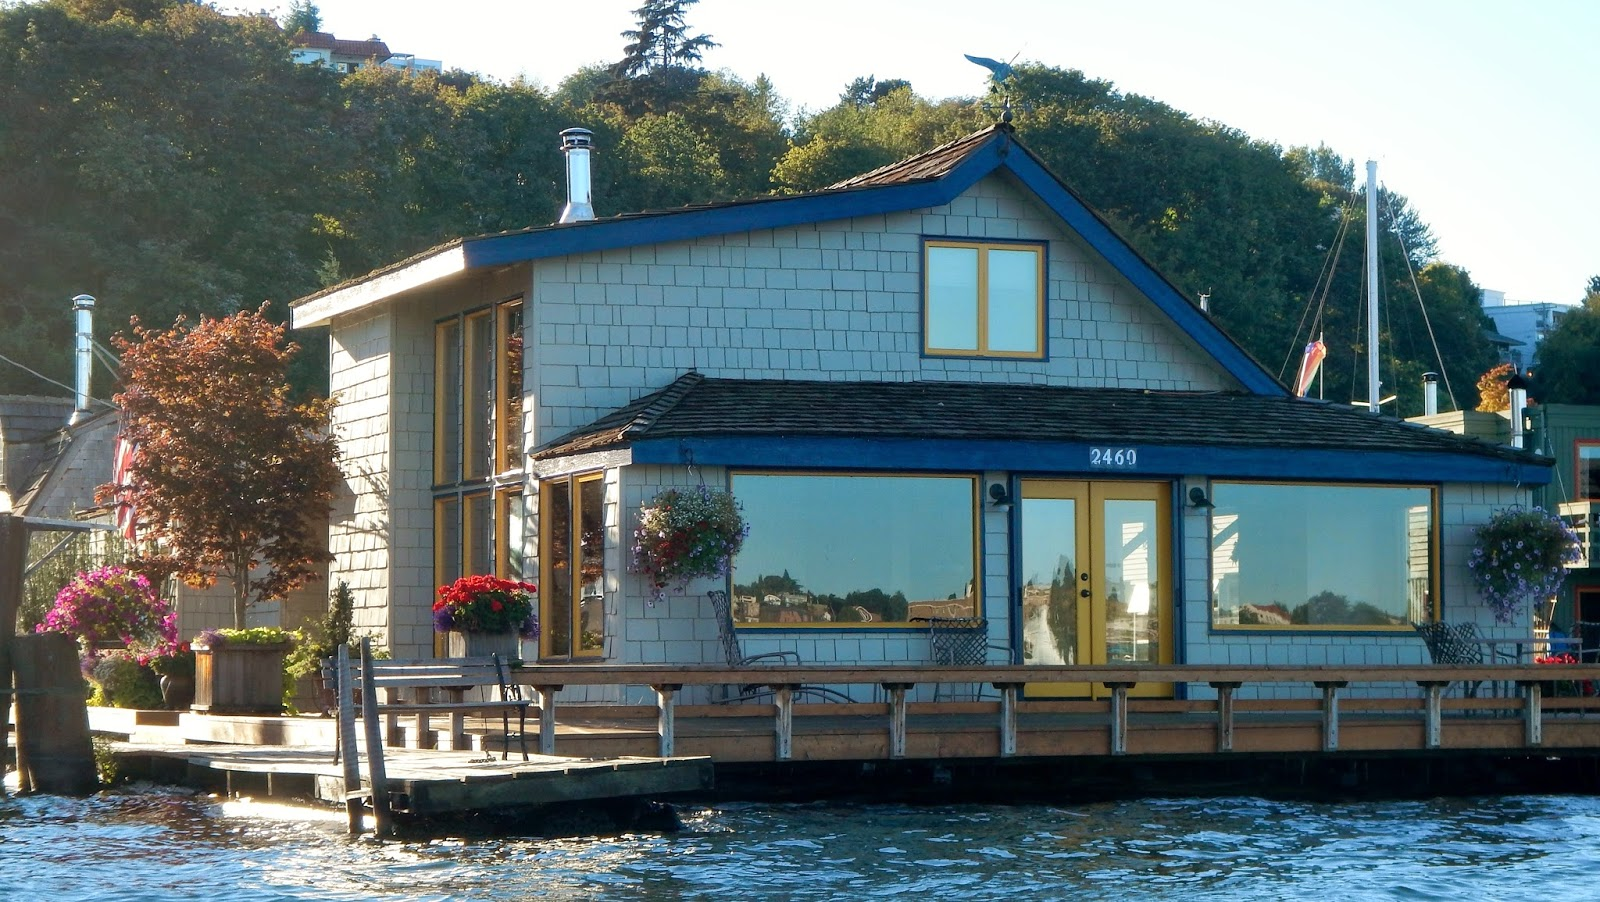 Tom Hanks's houseboat in Sleepless in Seattle